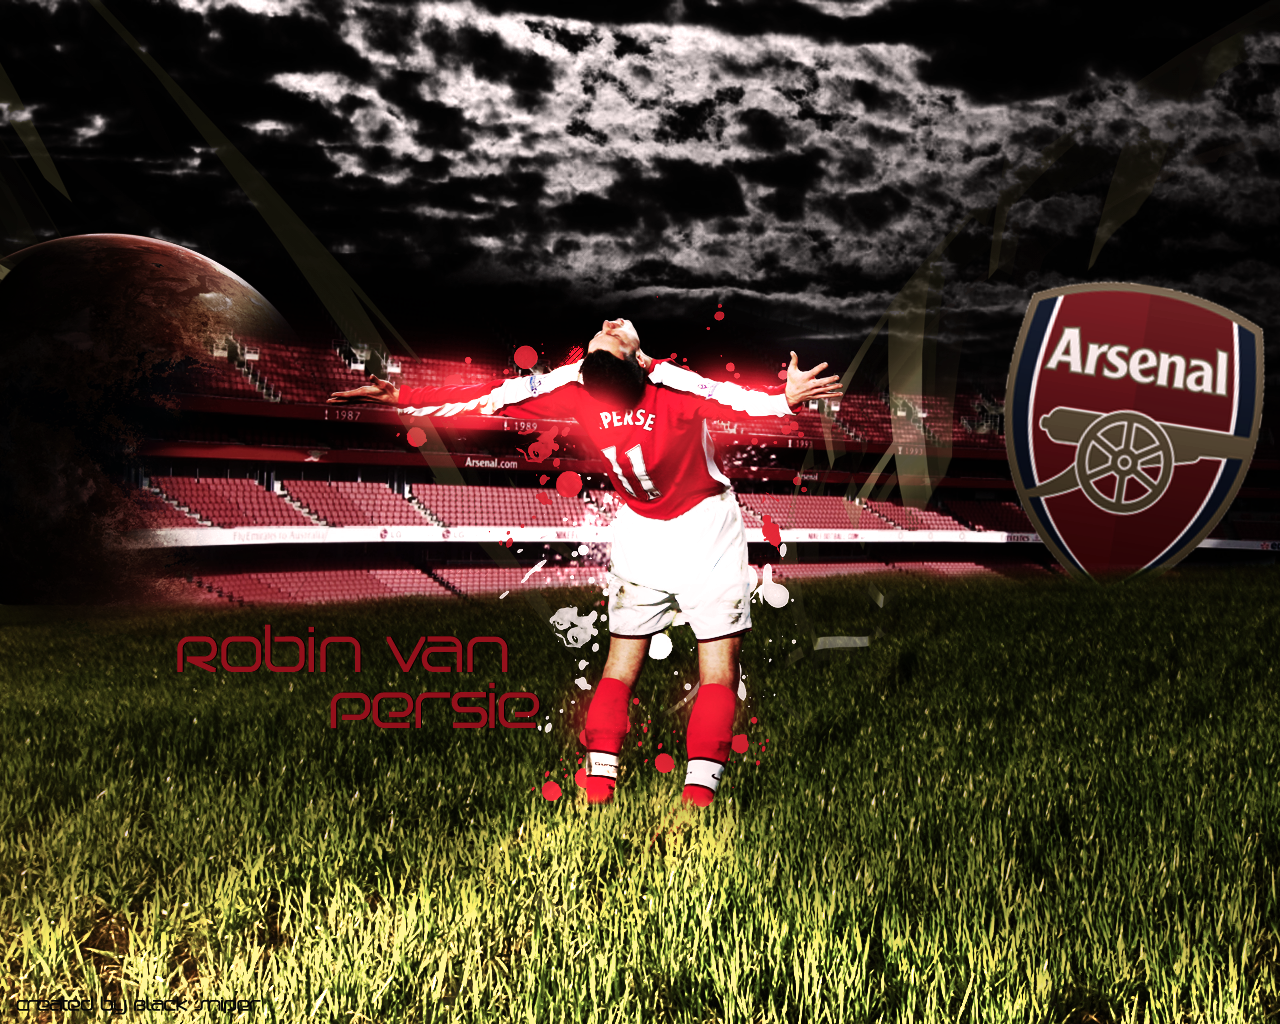 Van Persie Arsenal Wallpaper Arsenal Best Player Van